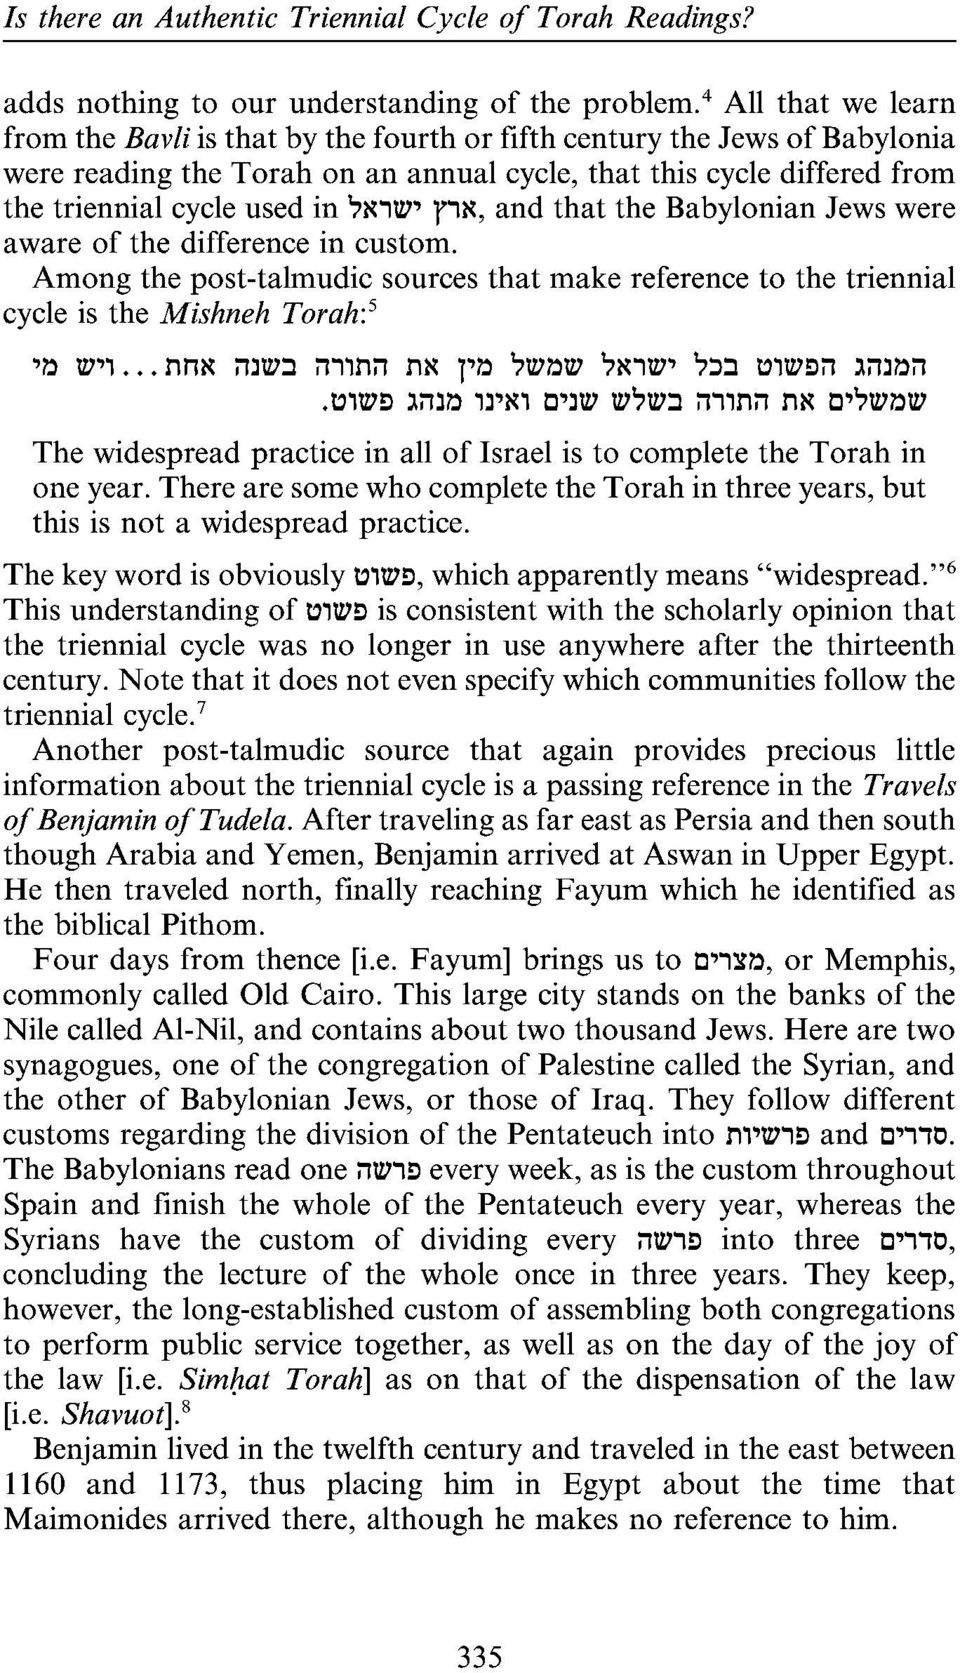 7N1tv' f1n, and that the Babylonian Jews were aware of the difference in custom.